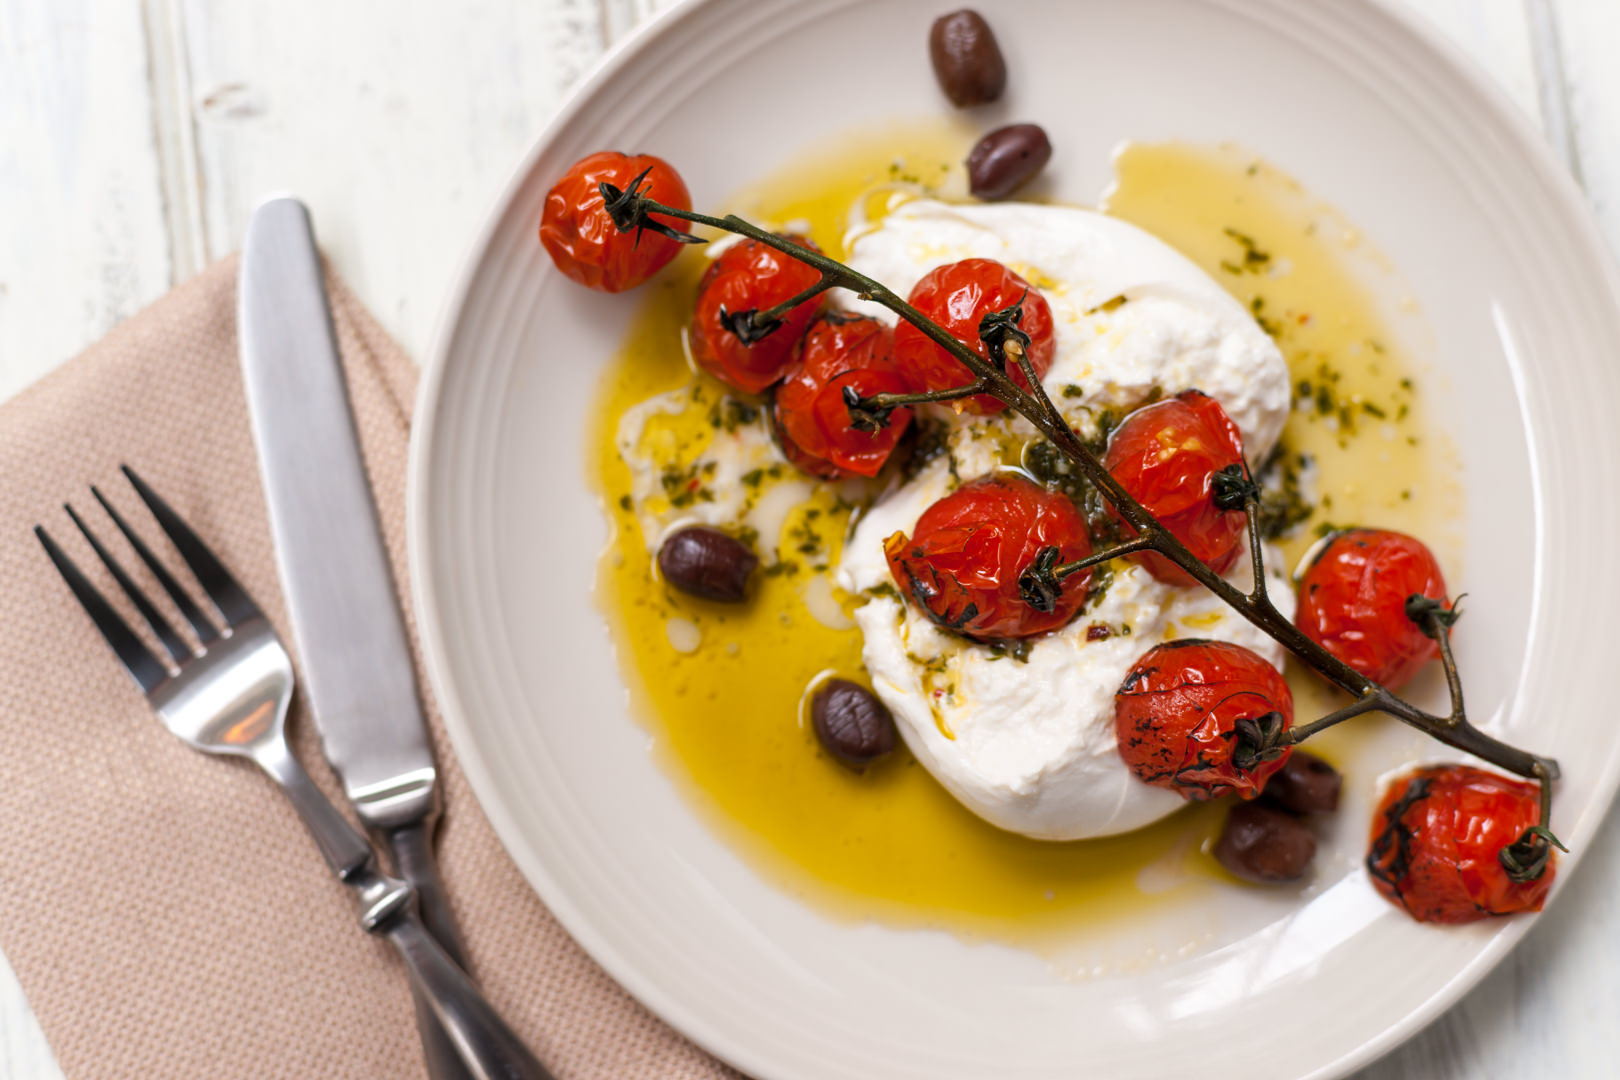 Vivo 53 Burrata - Dallas Food Photographer | Theresa Fernandez Photography